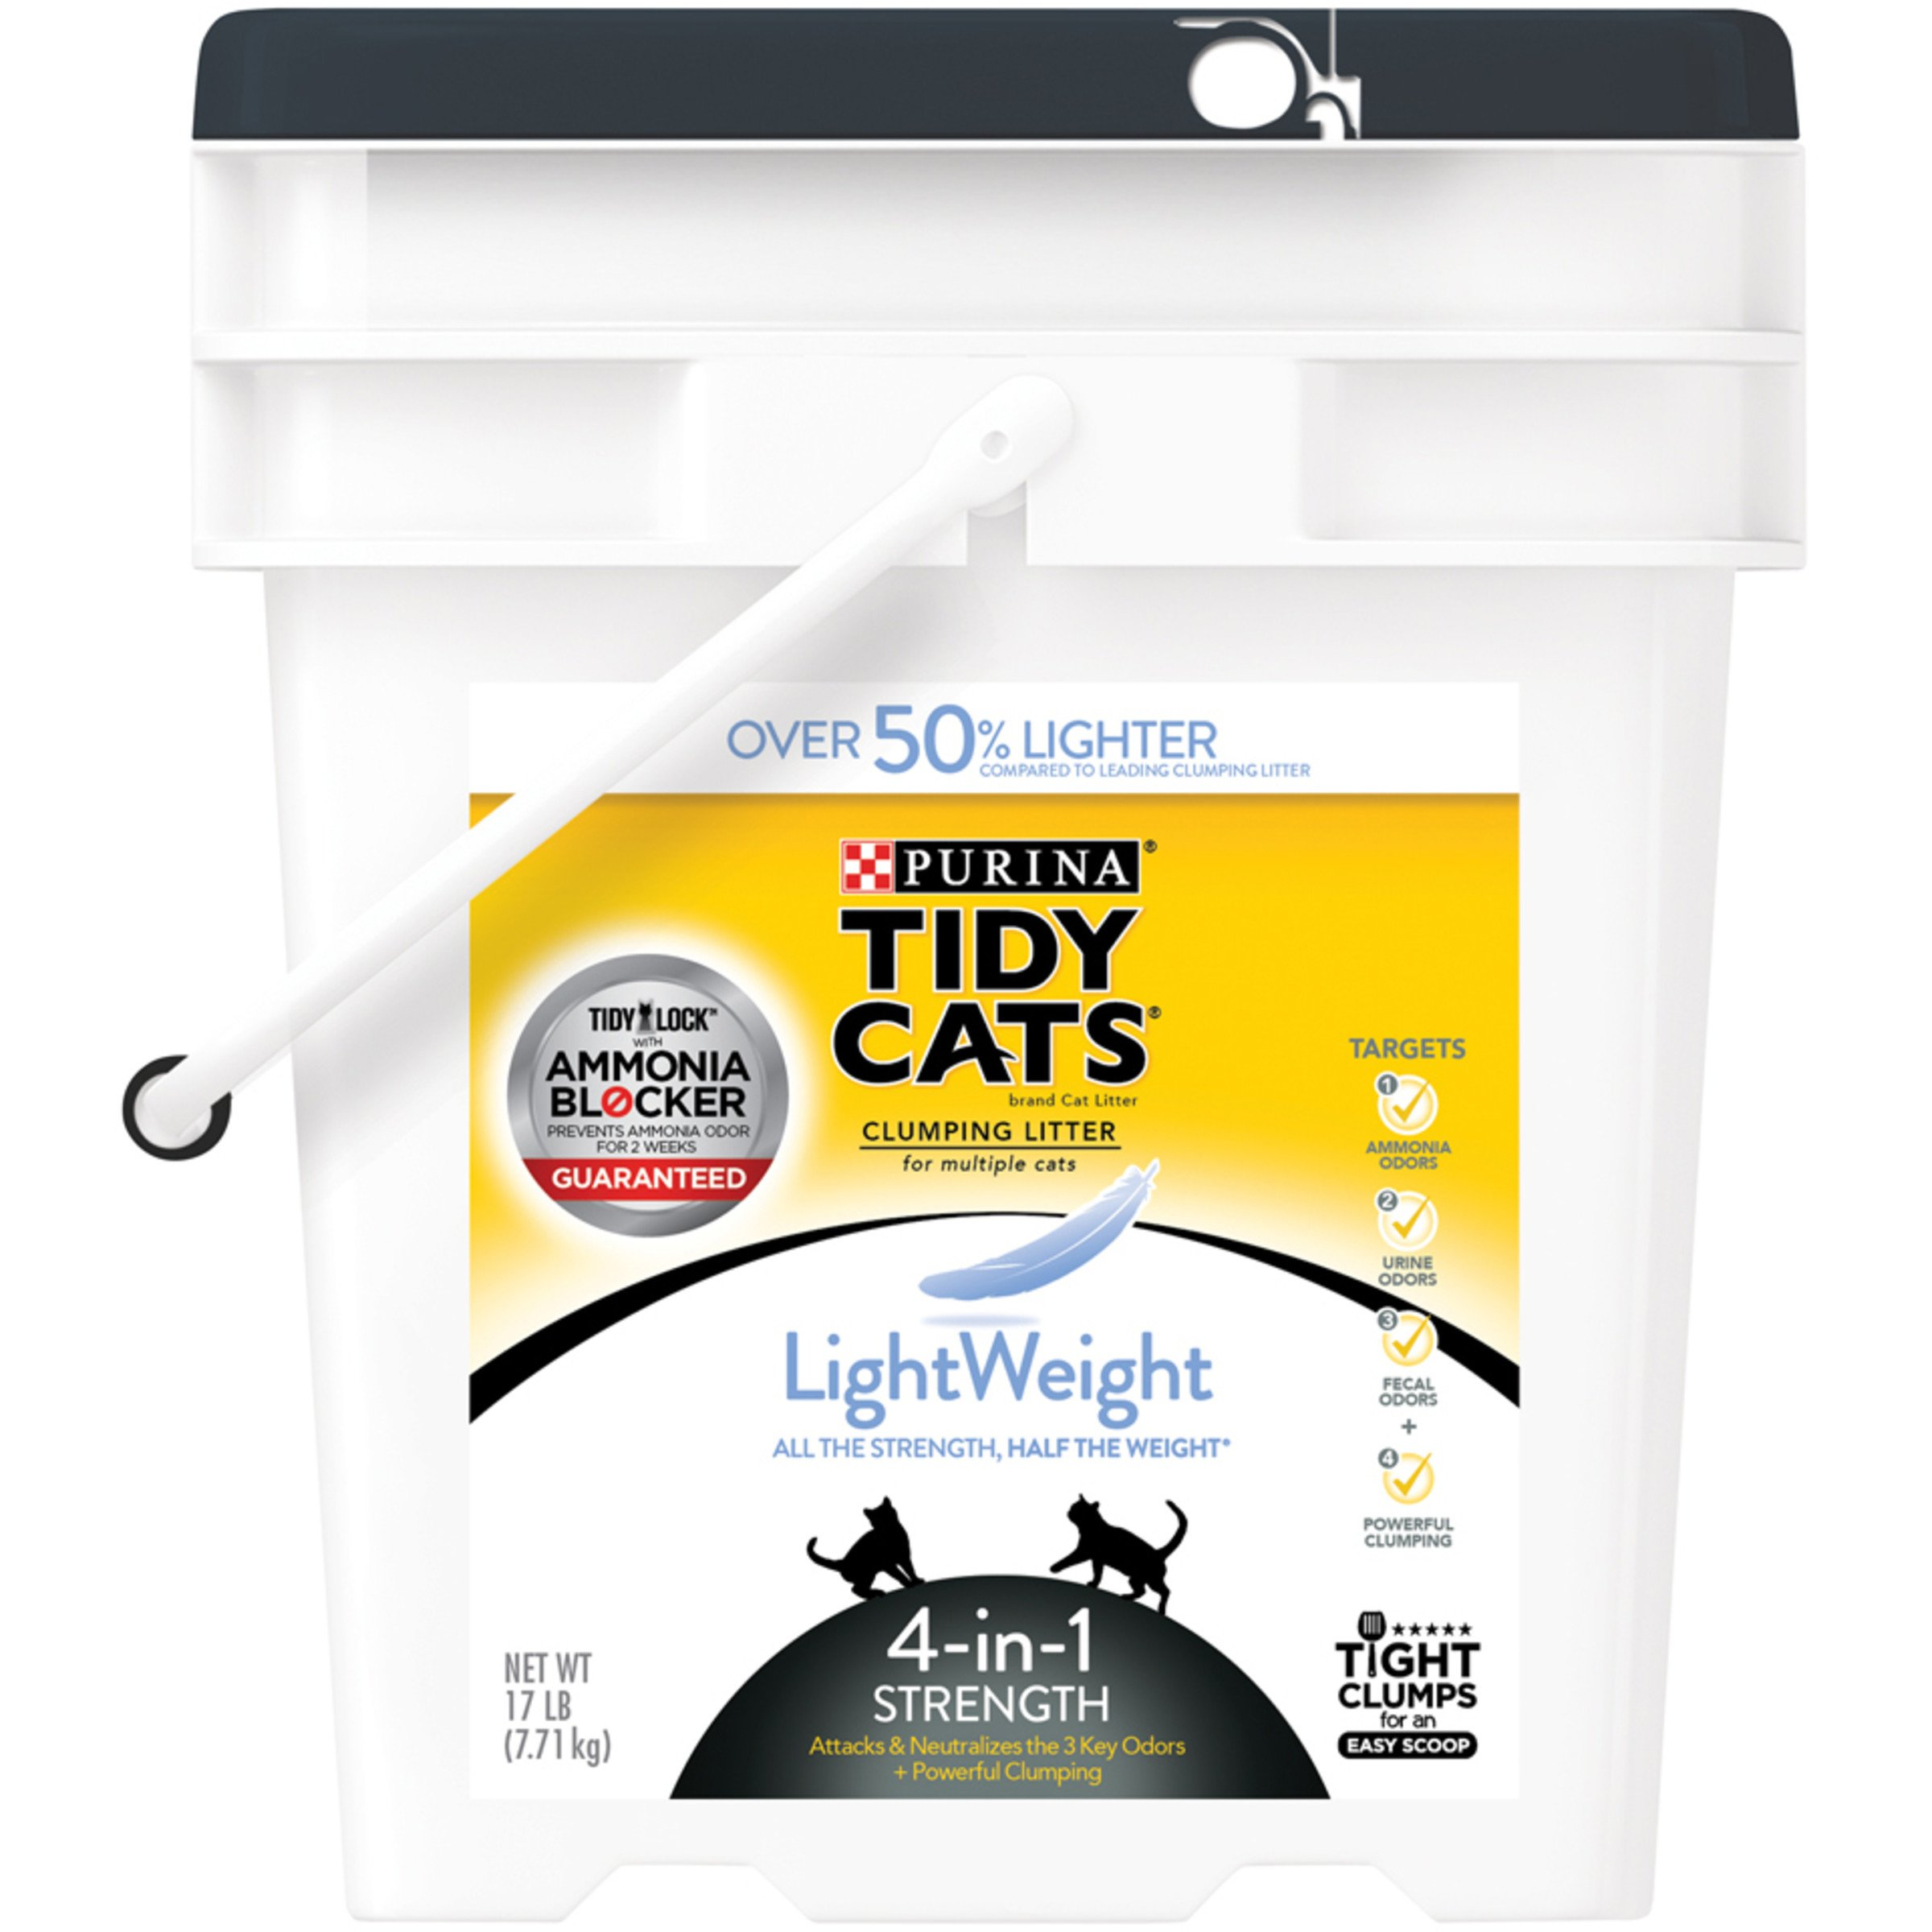 Purina Tidy Cats LightWeight Clumping Cat Litter 4-in-1 Strength